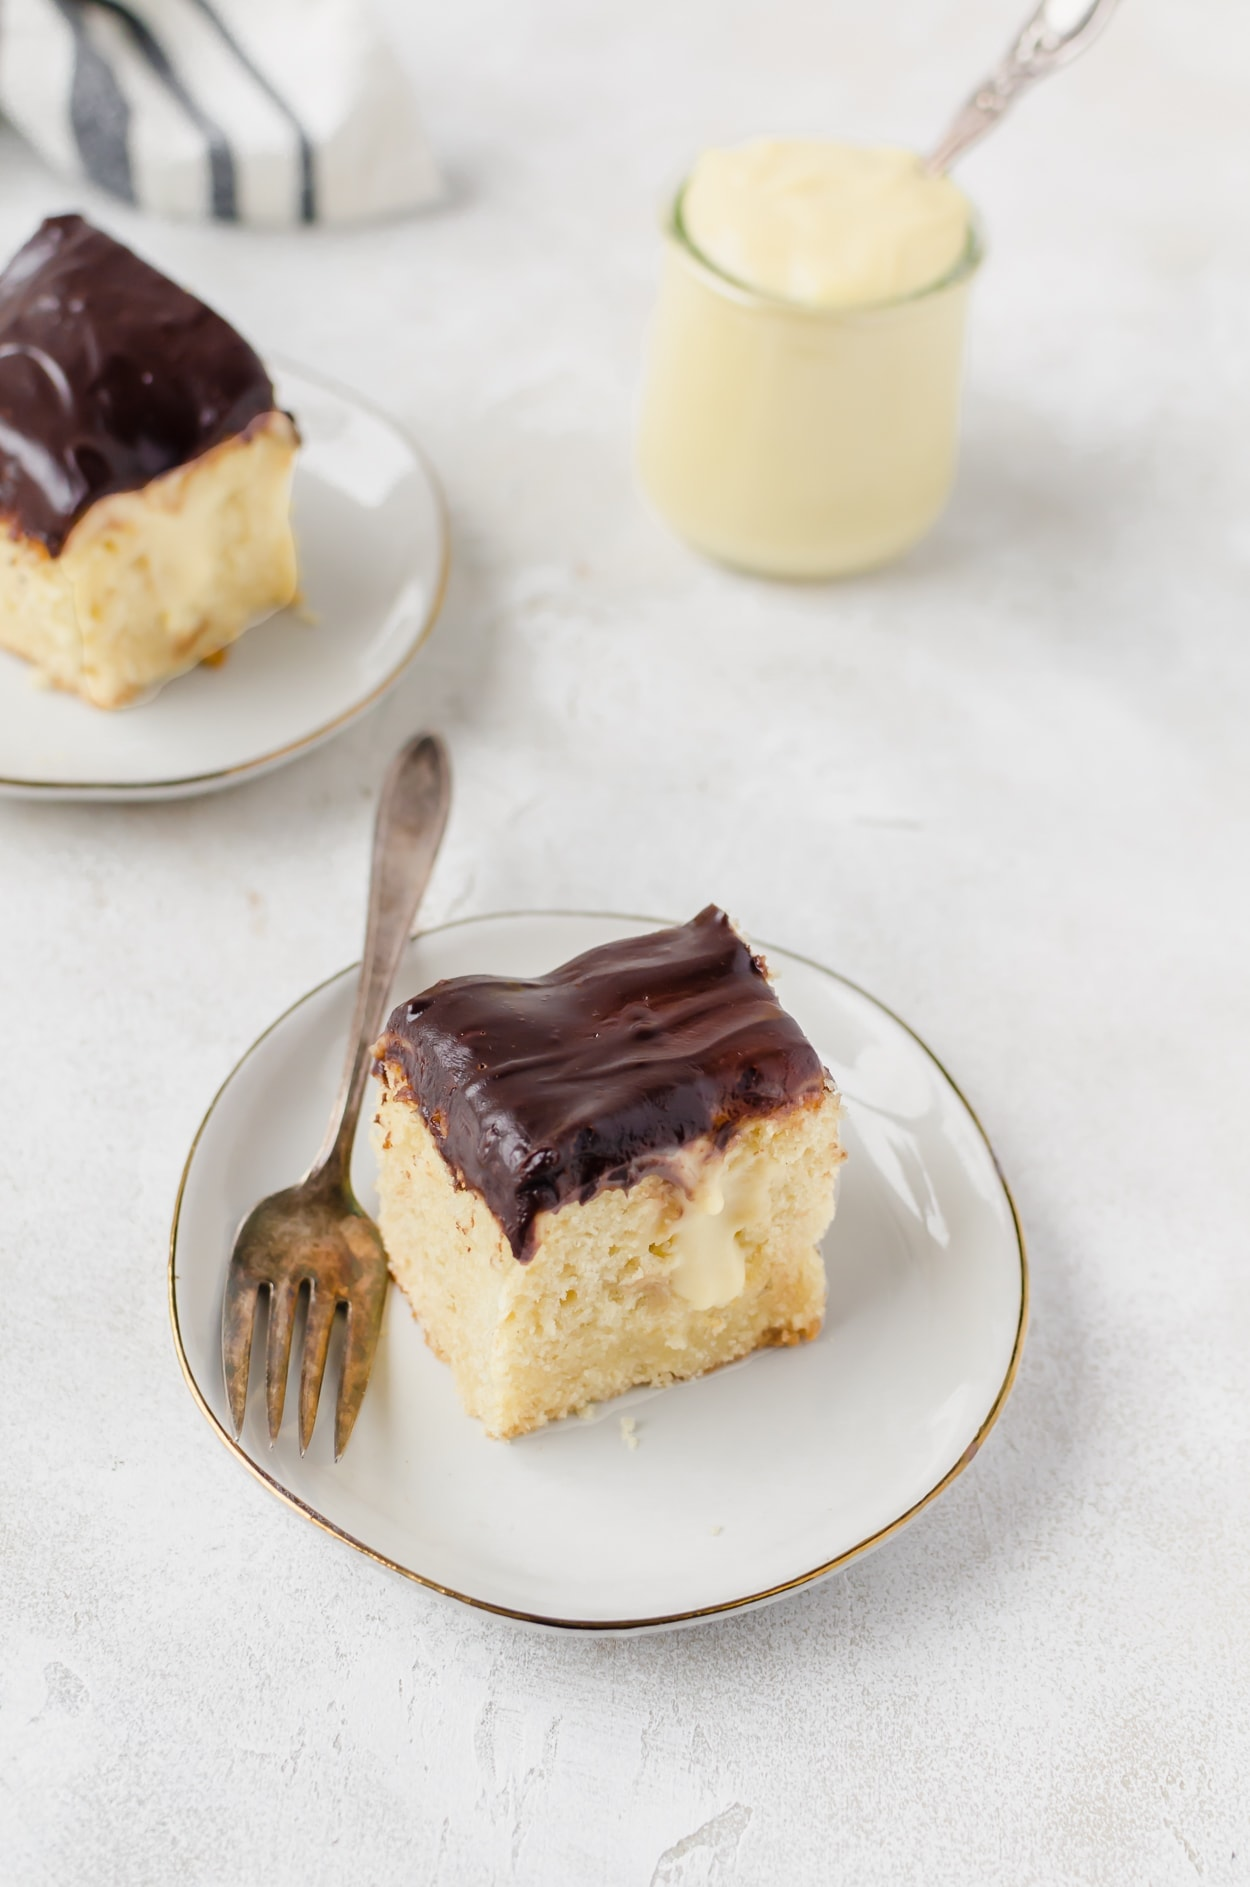 Relax with some milk and this boston cream pie poke cake